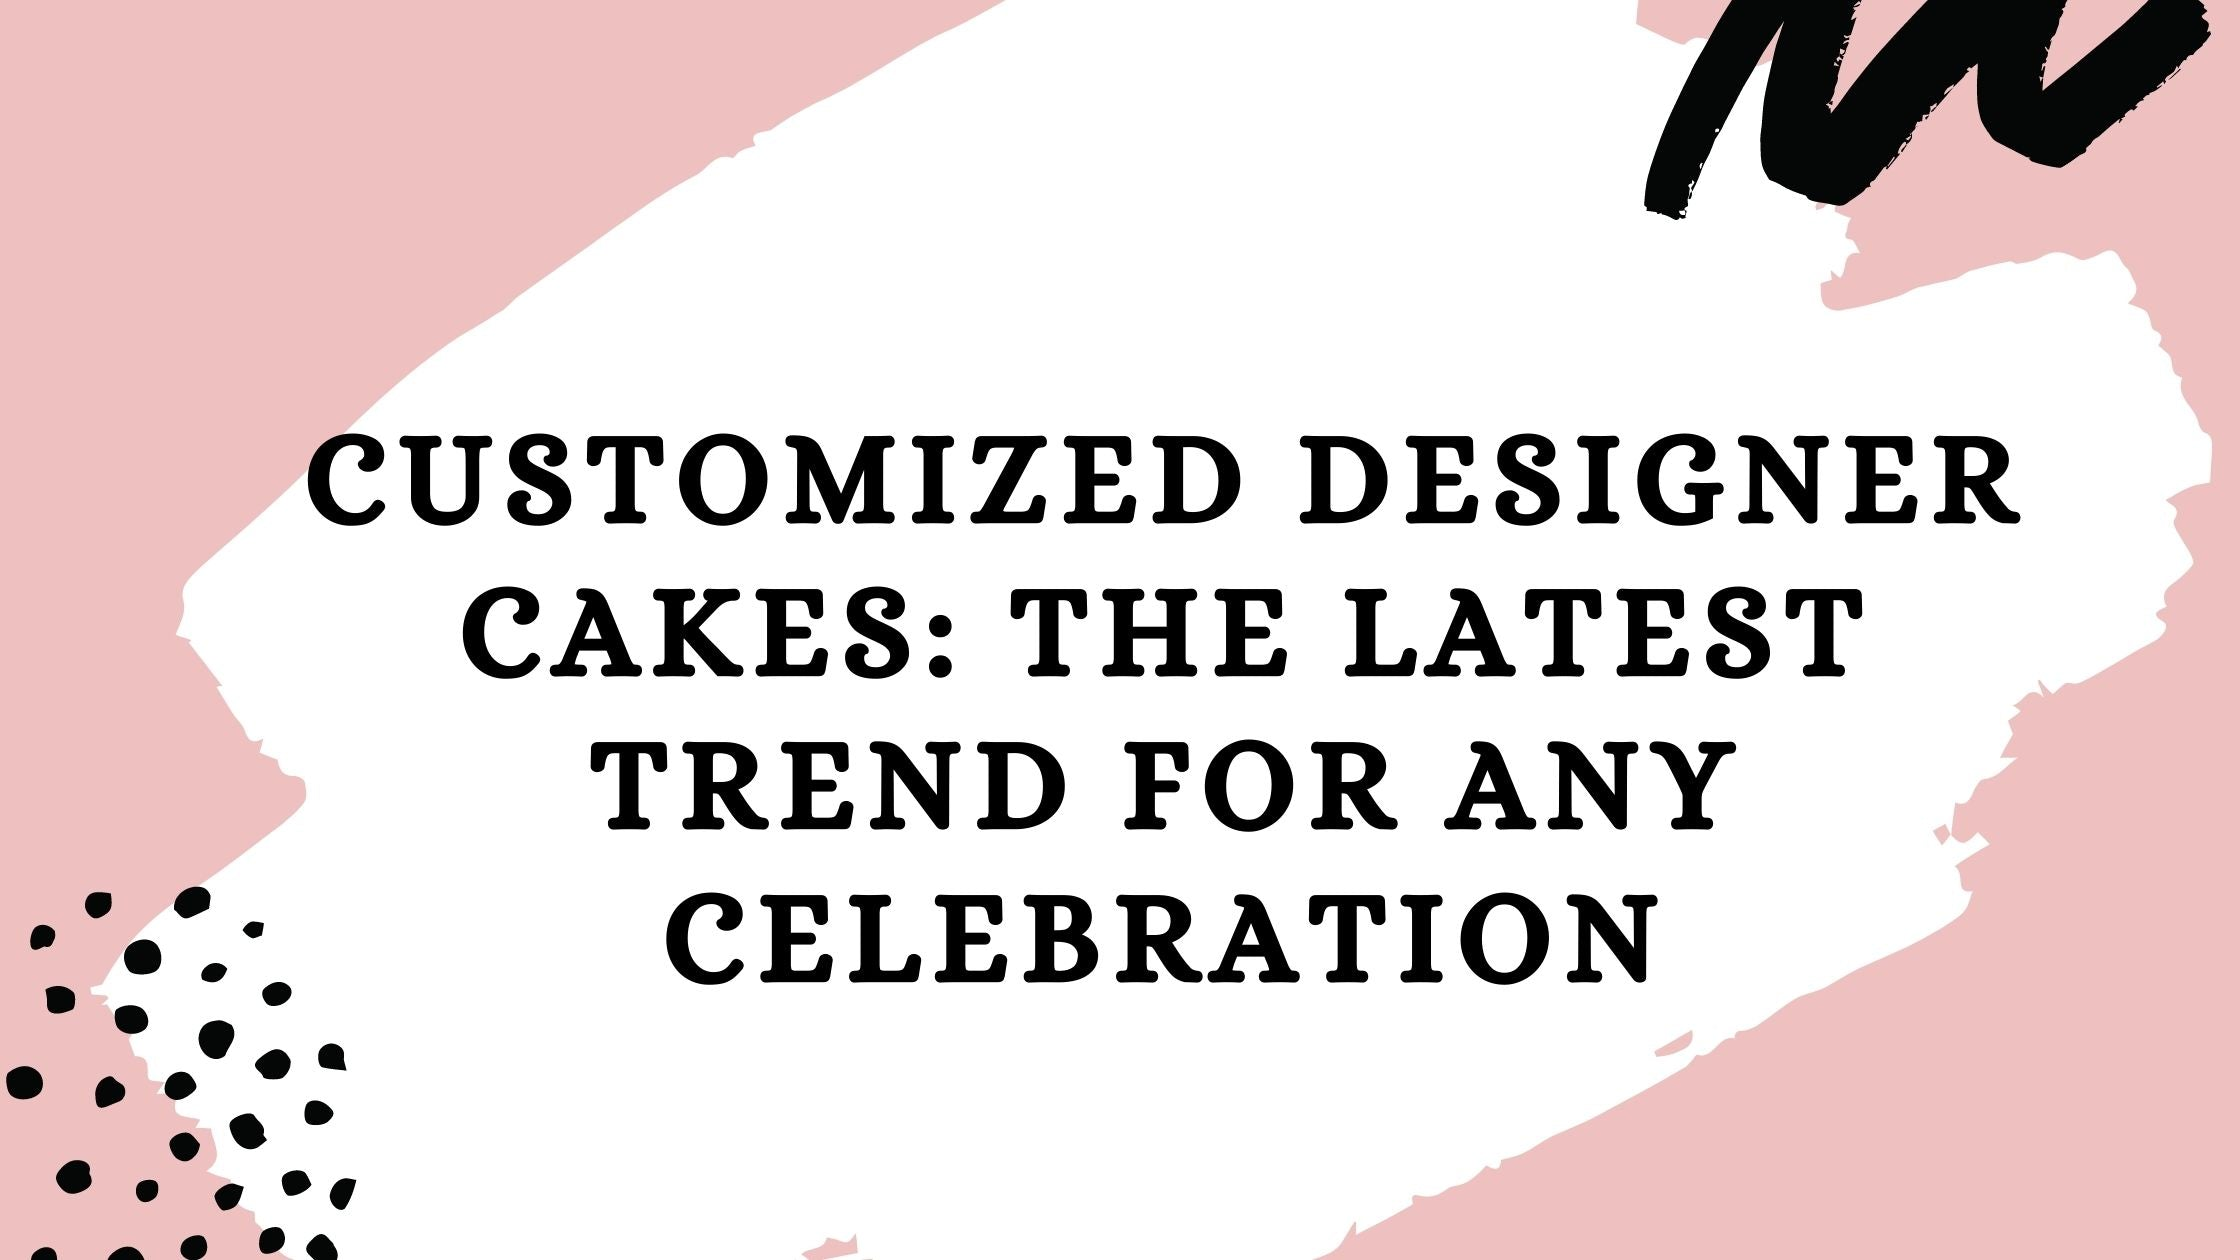 Customized Designer Cakes: The Latest Trend For Any Celebration